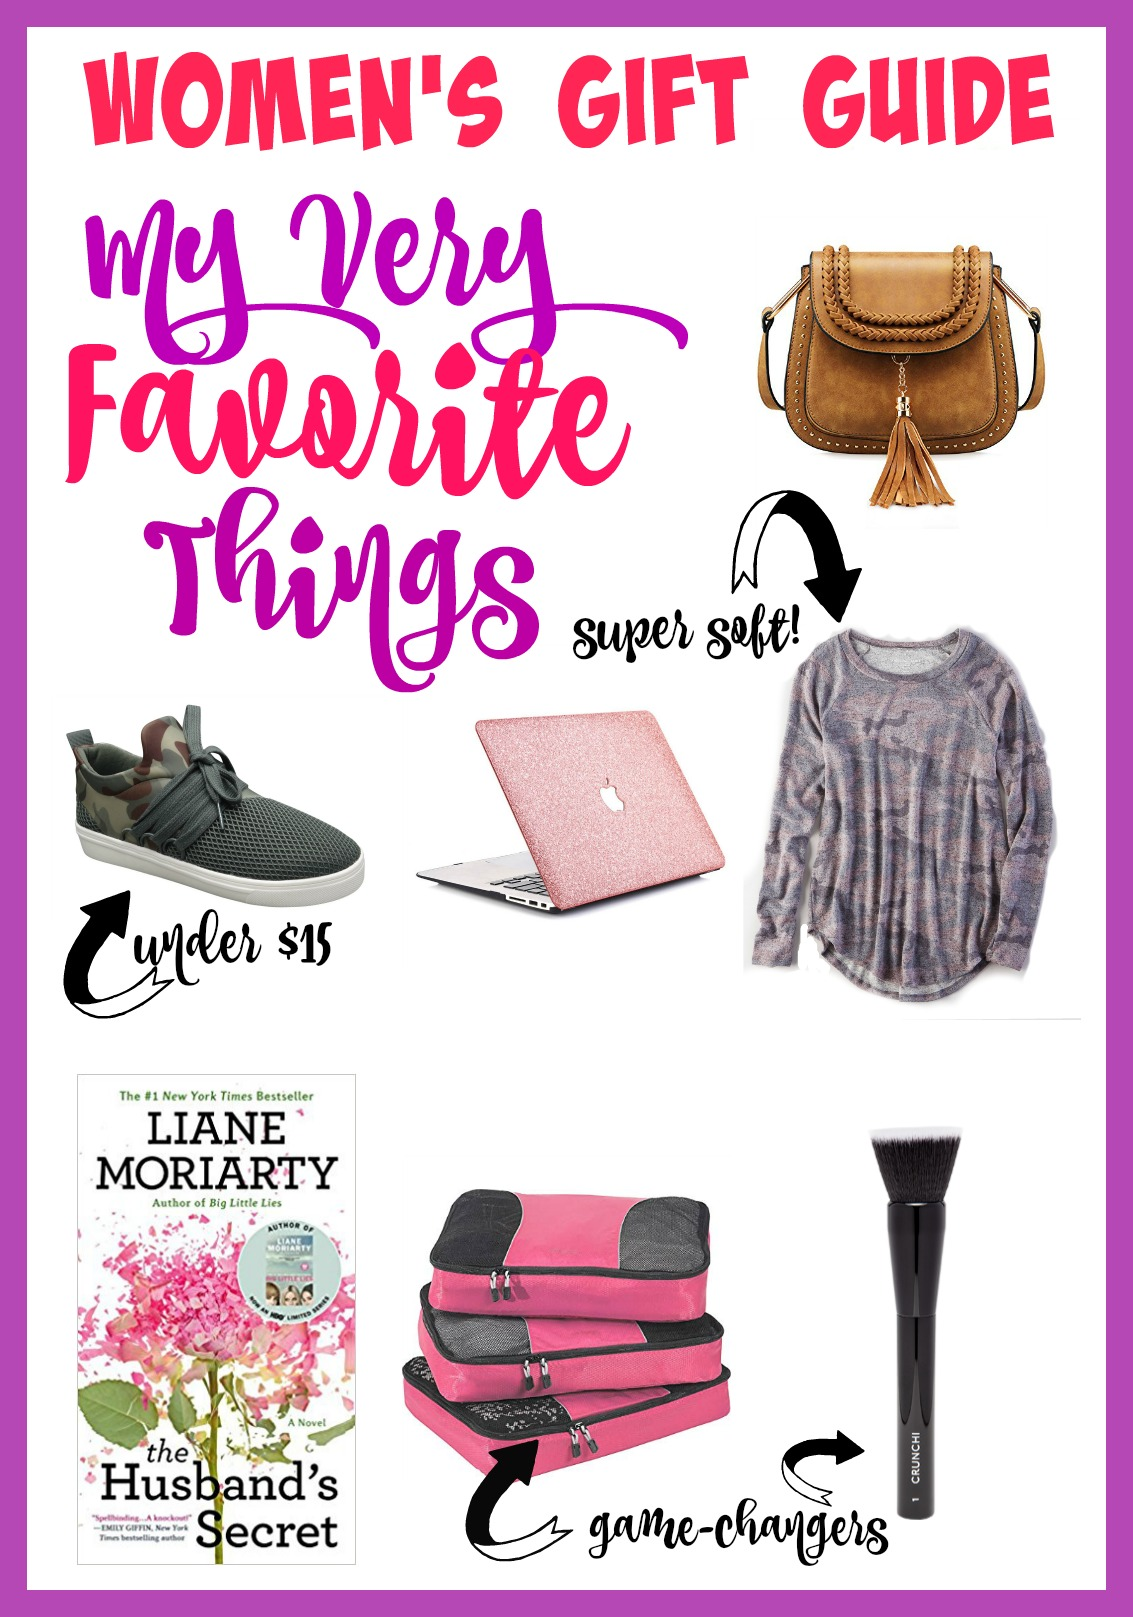 My Very Favorite Things A Gift Guide for Women